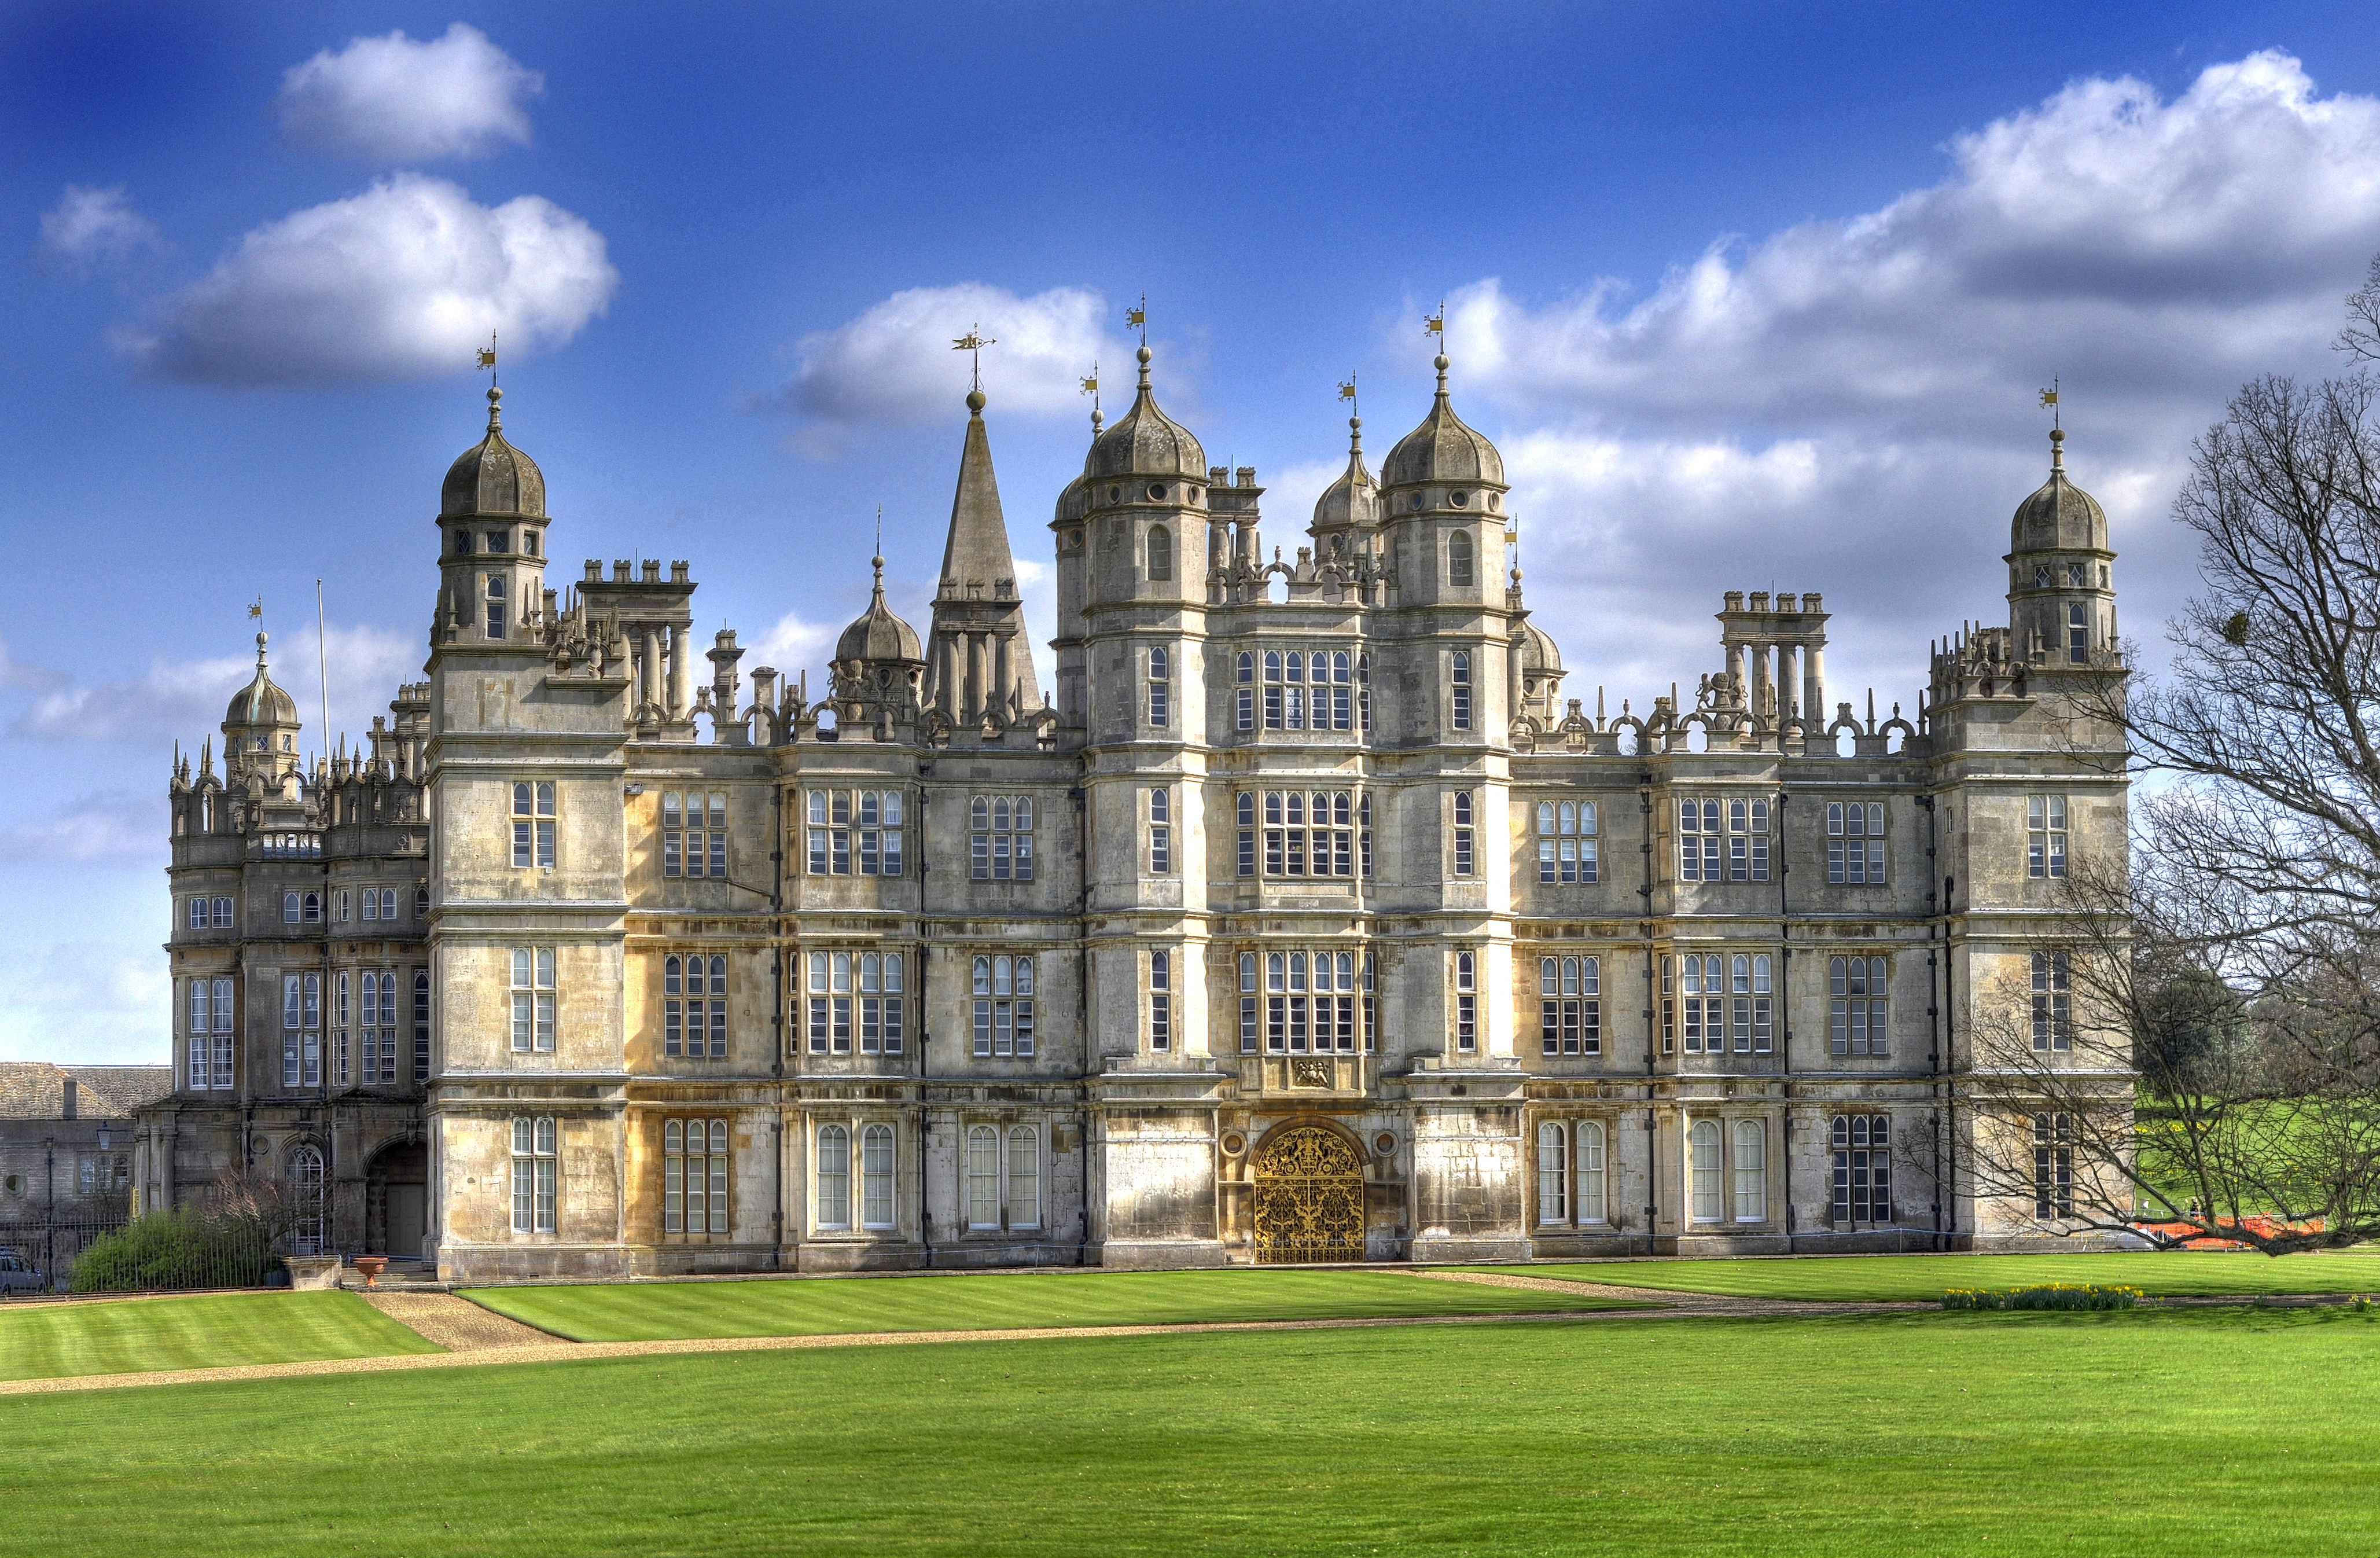 Burghley House (1555 1587), seat of the Marquess of Exeter, hereditary Lord Paramount of Peterborough.